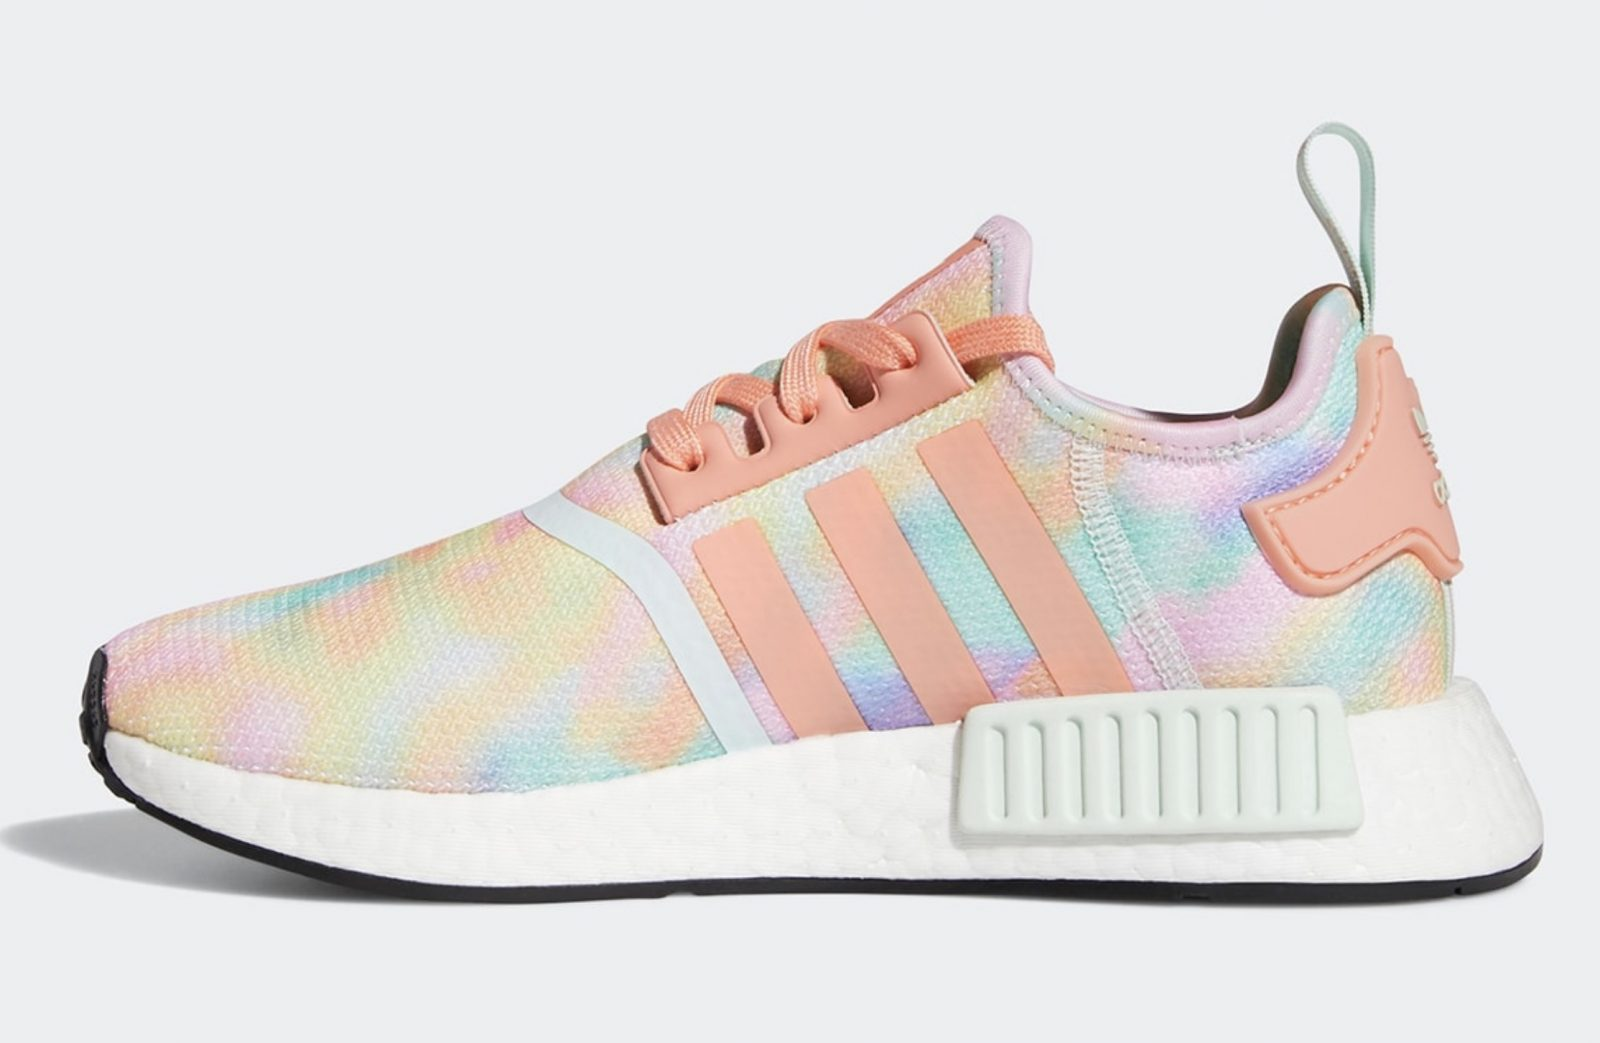 Get Colourful In The Tie-Dyed Upcoming adidas NMD R1 'Easter' left